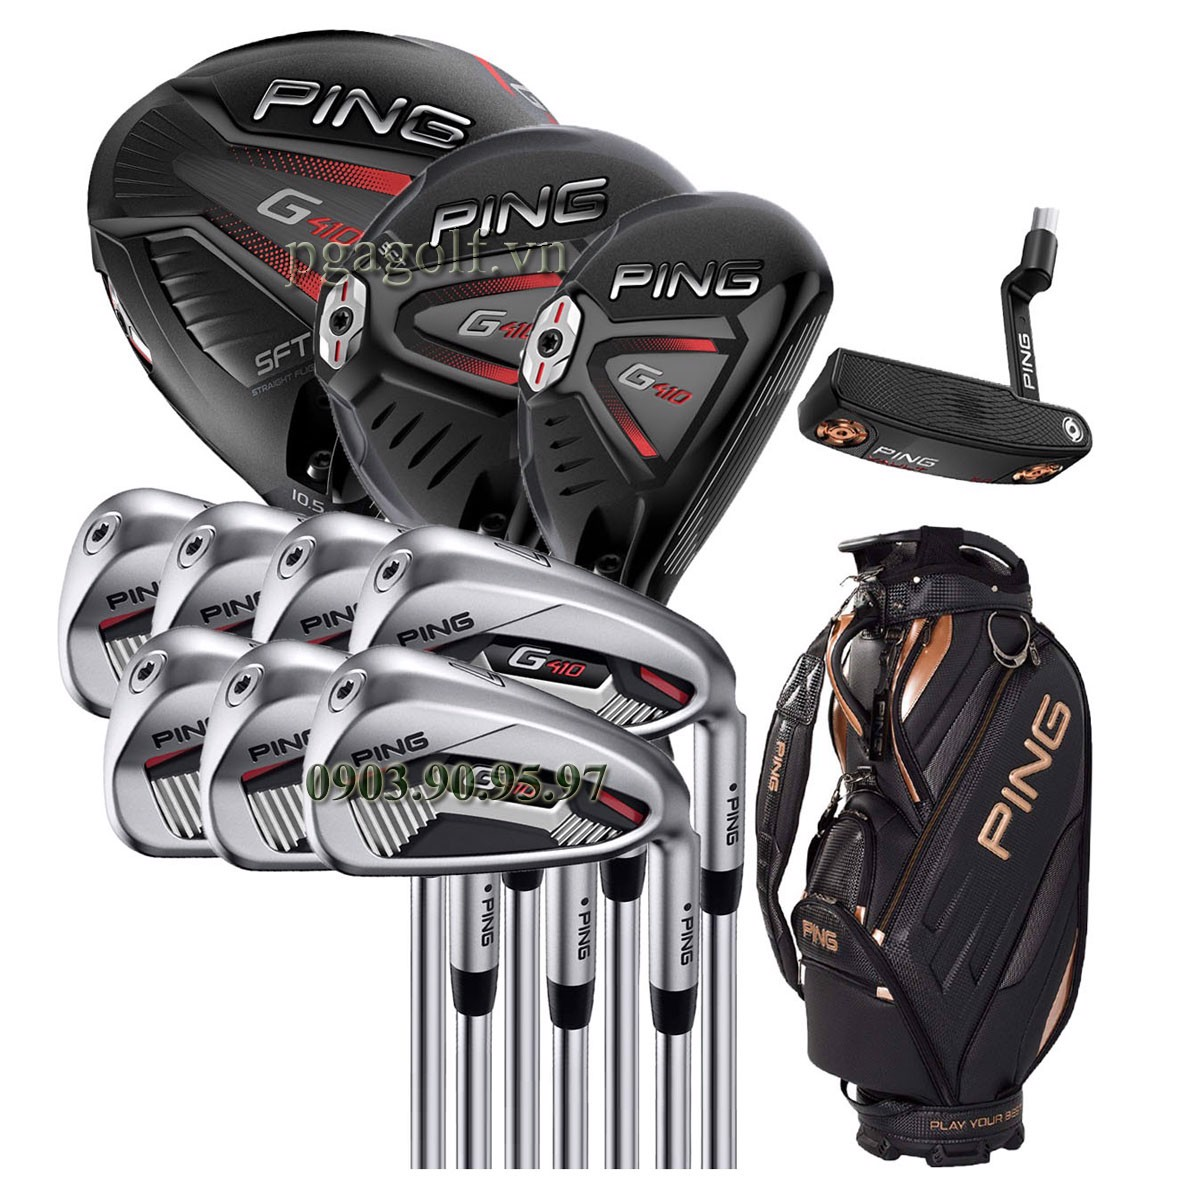 Bộ Gậy Golf Ping G410 ( New model)